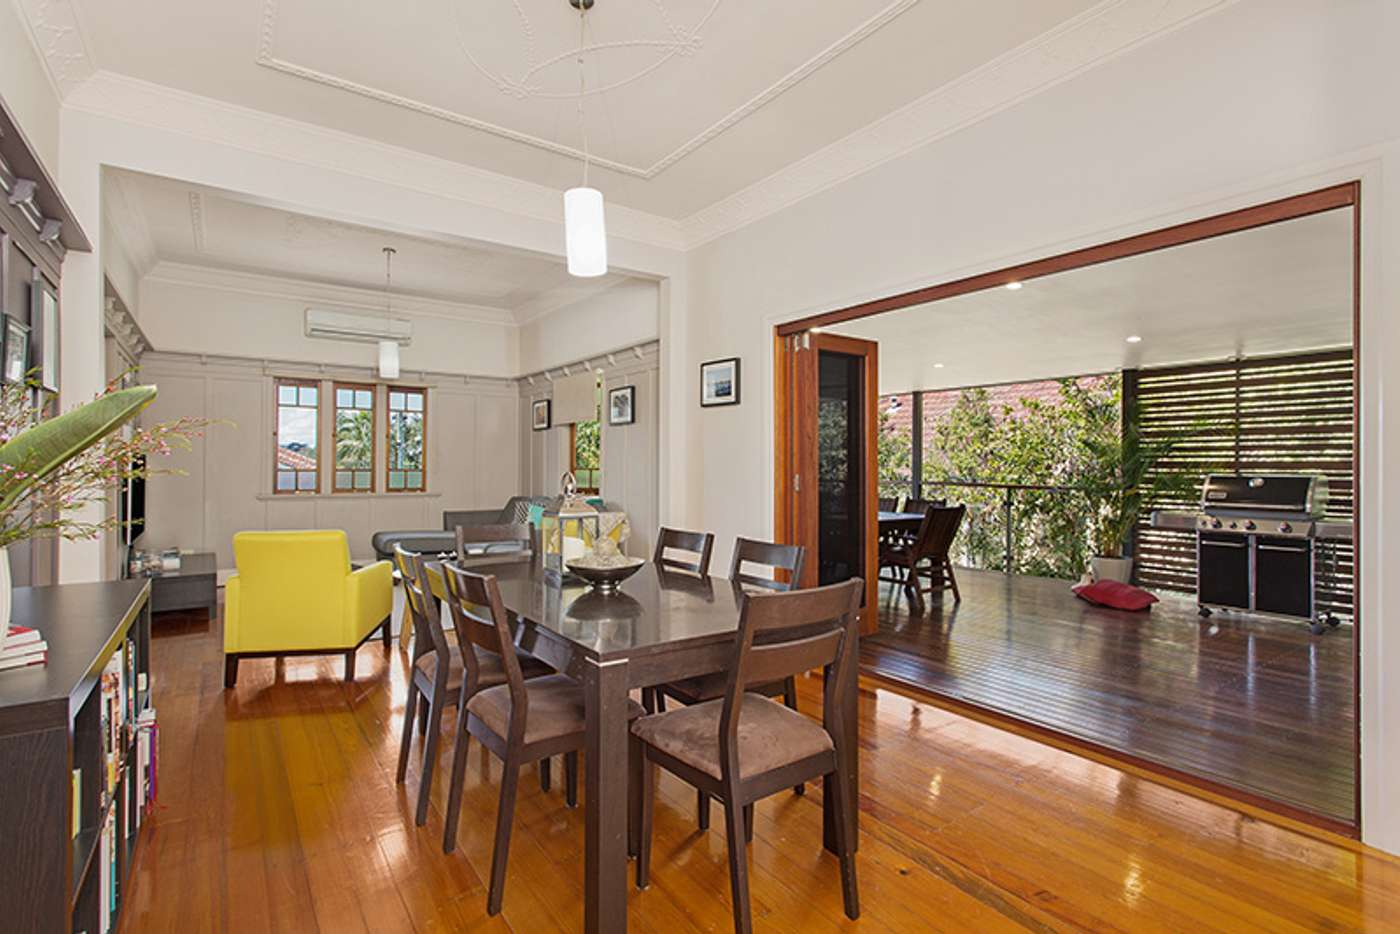 Main view of Homely house listing, 24 Elgin Street, Alderley QLD 4051